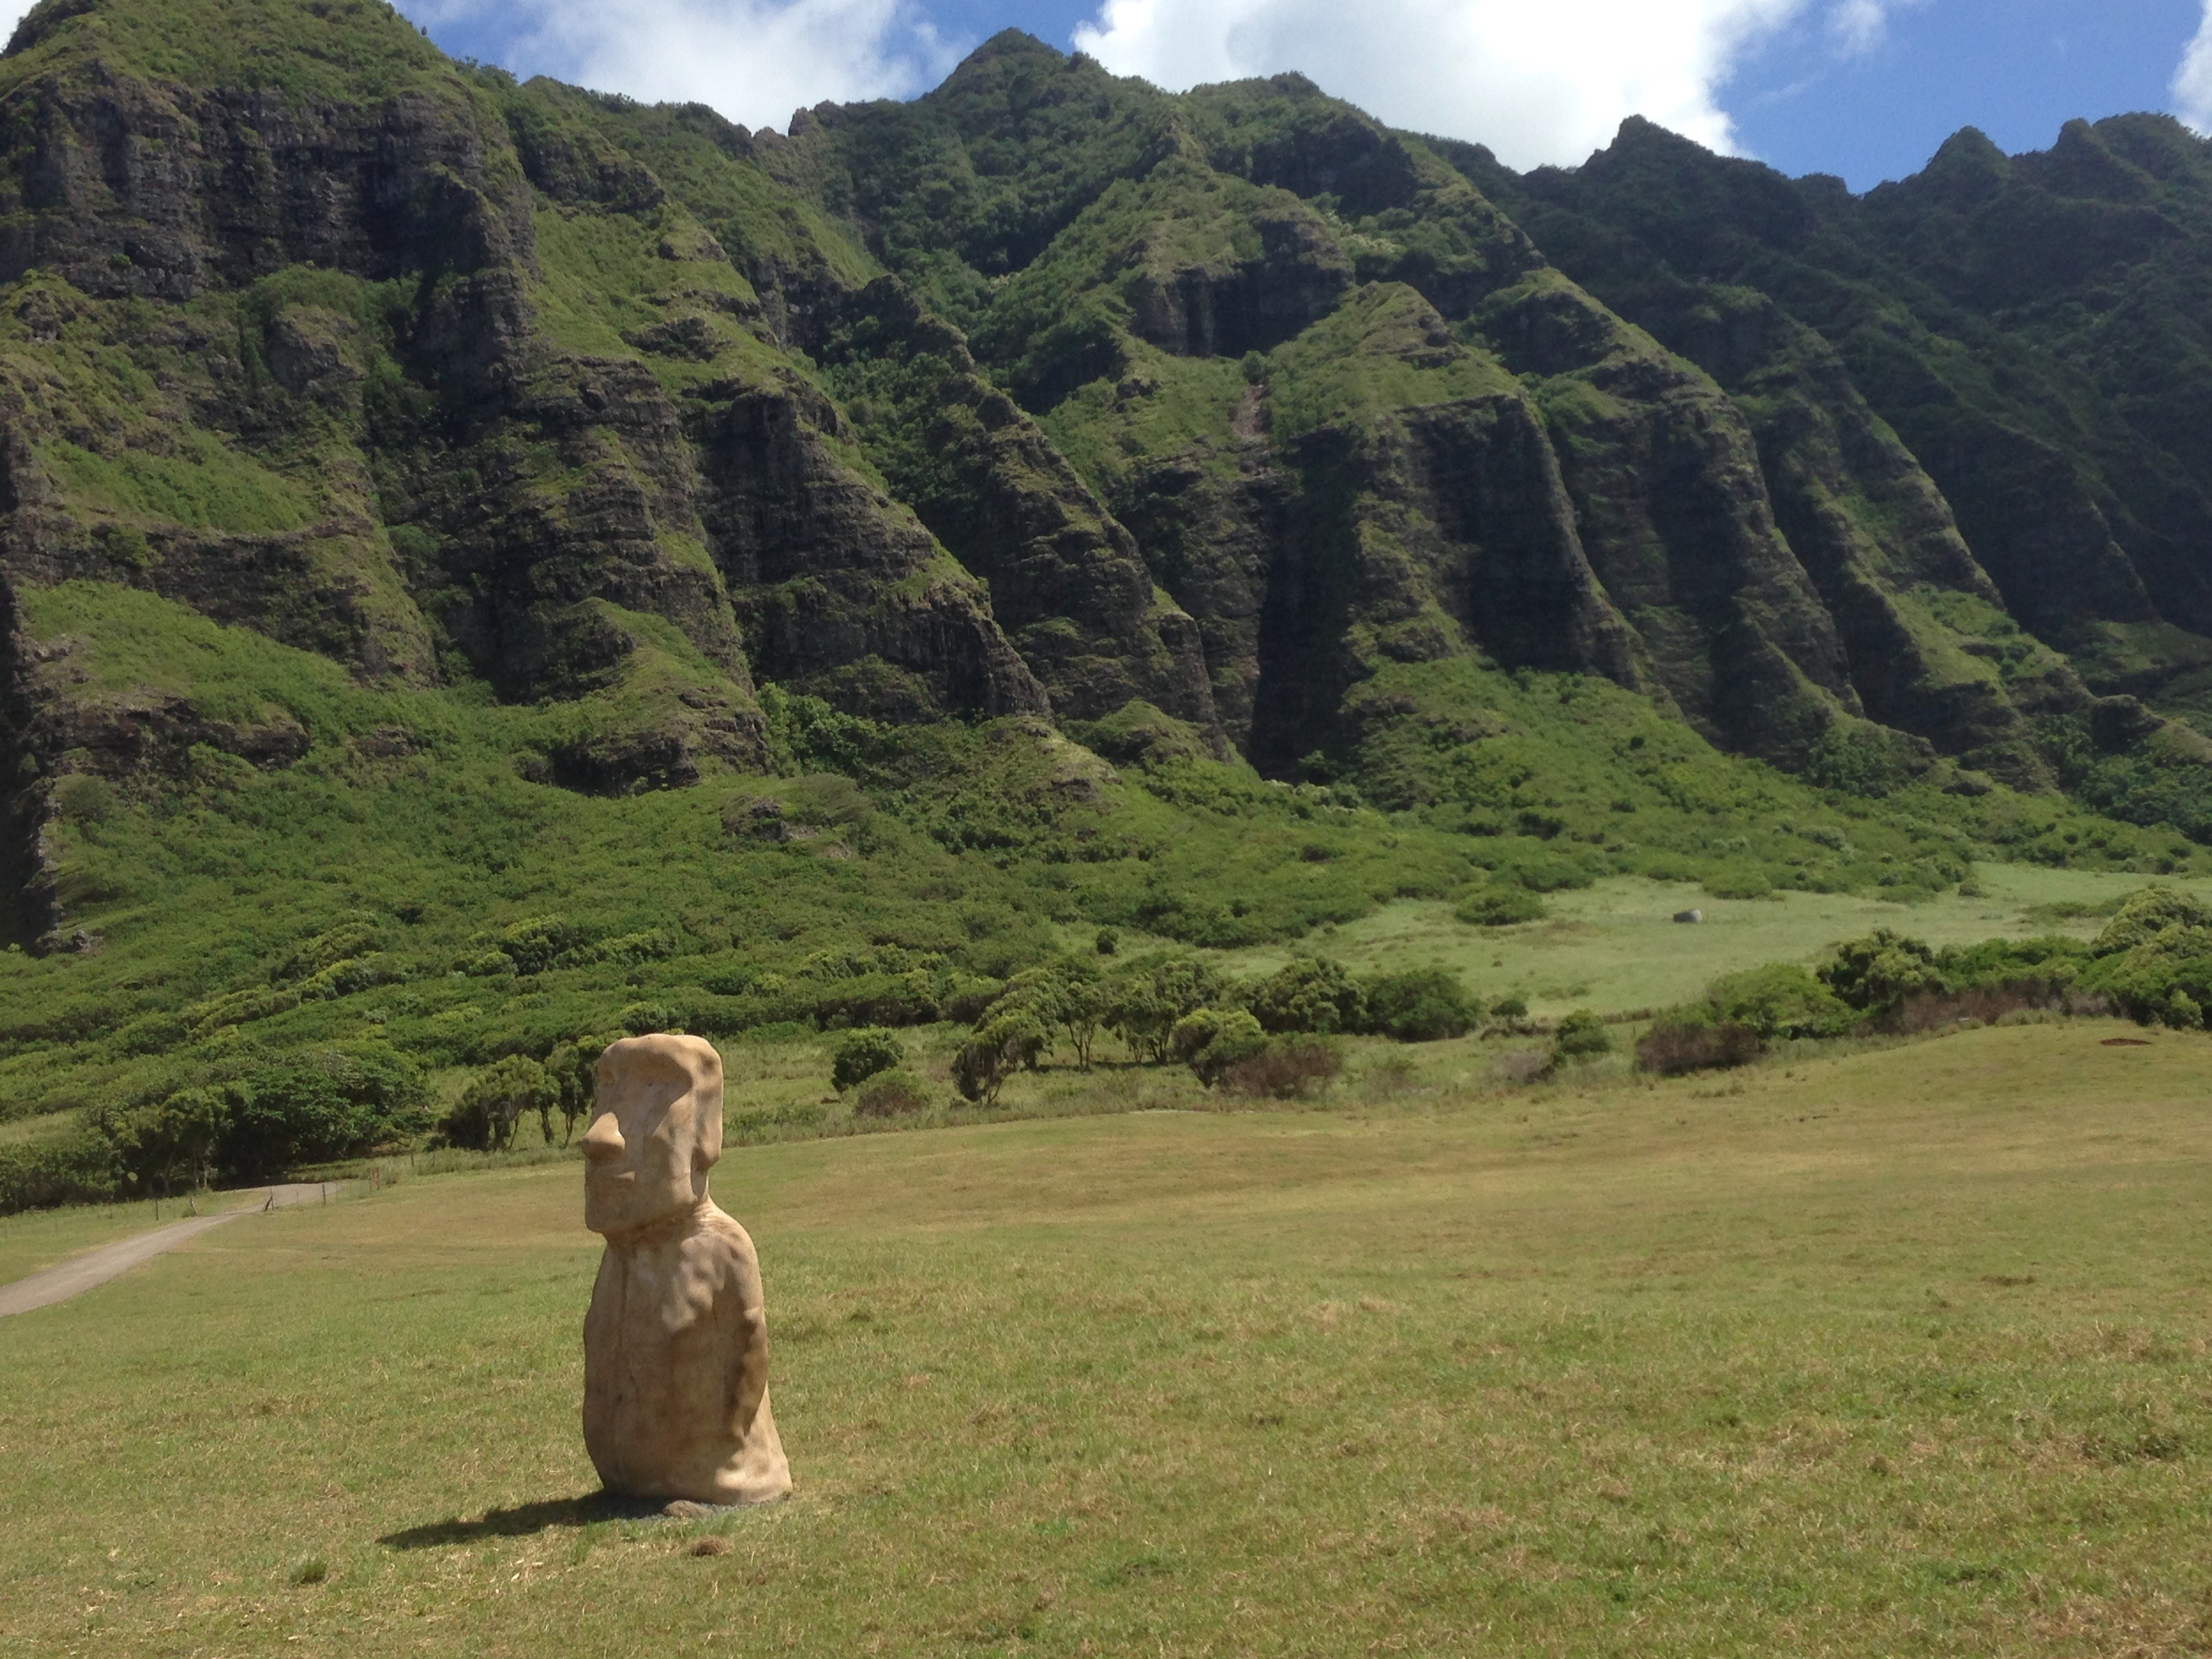 Movie set props in the valley at Kualoa Ranch